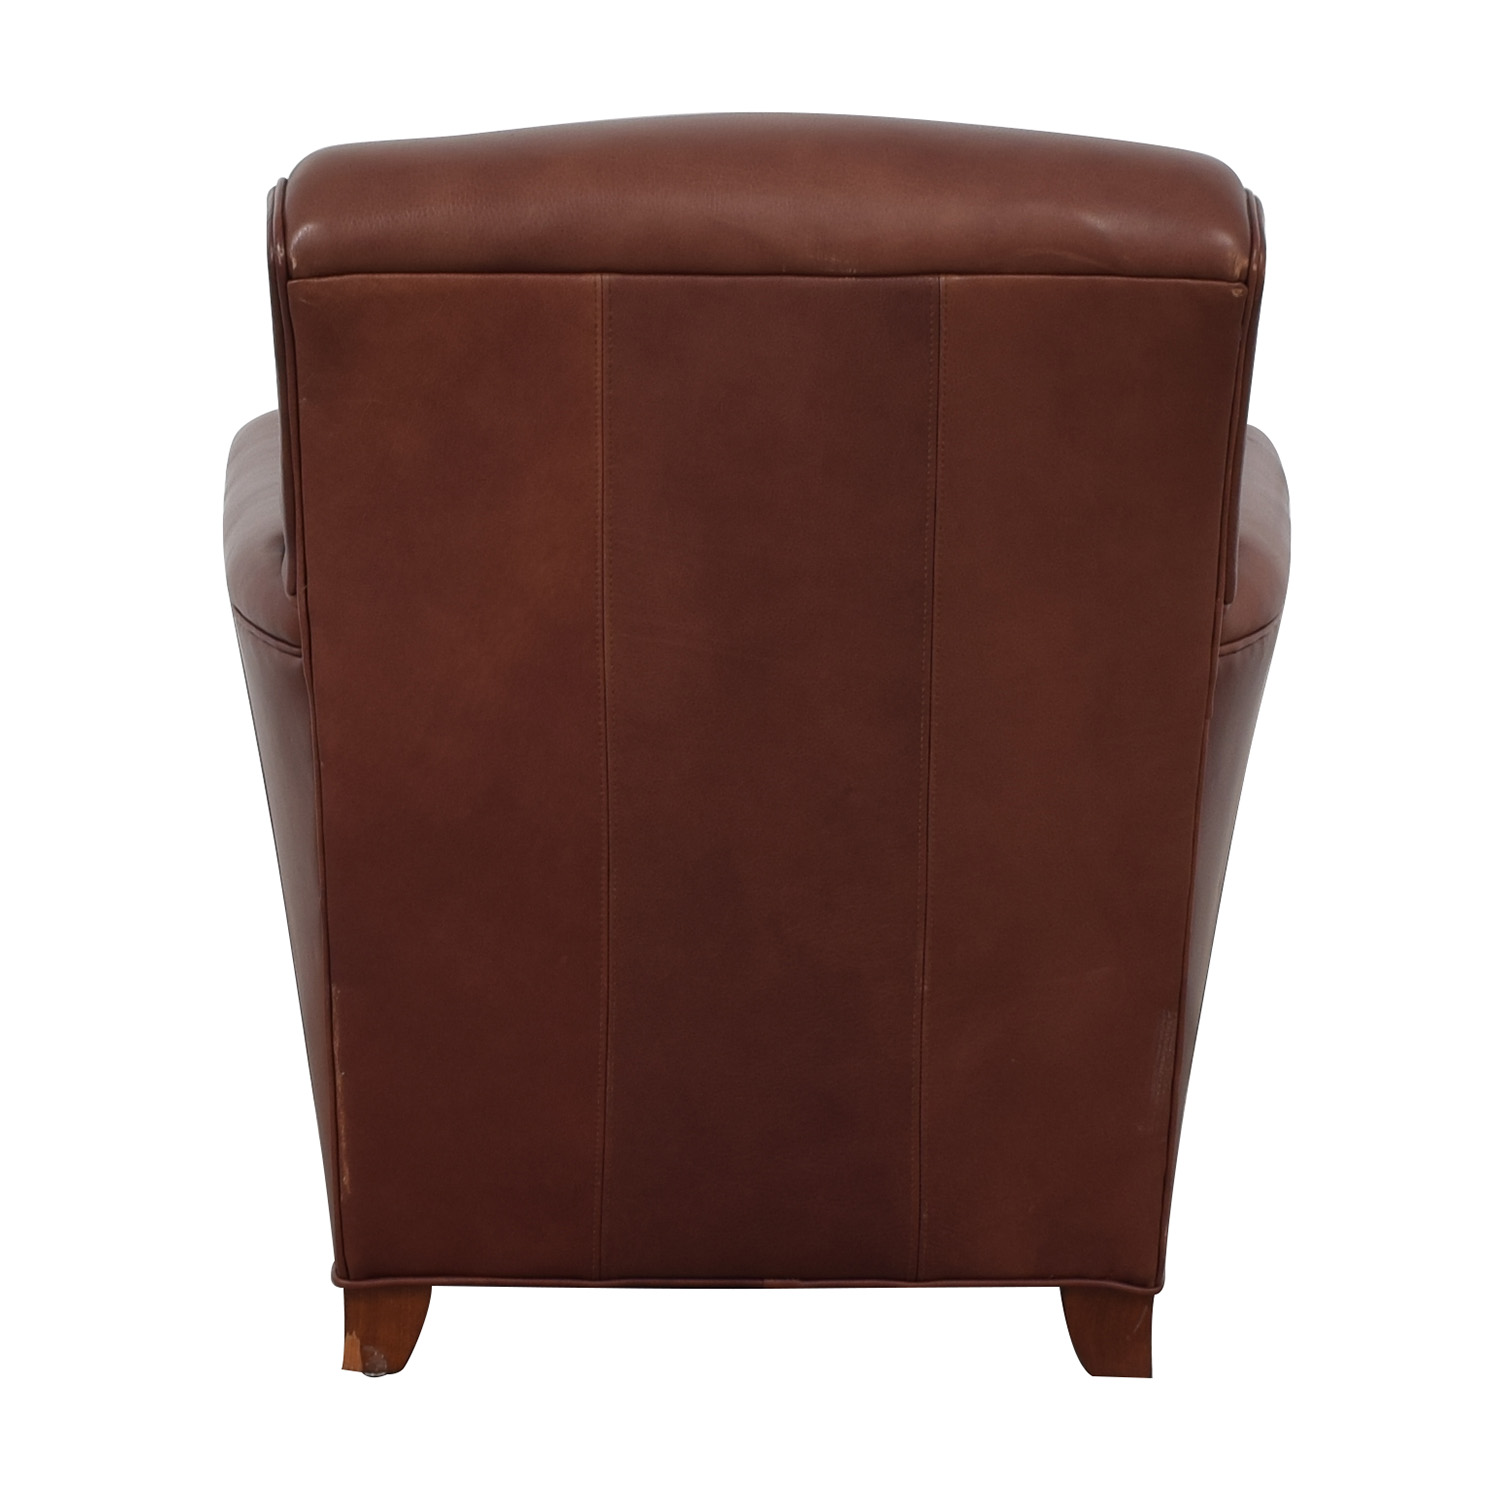 buy Stickley Furniture Stickley Furniture Leather Club Chair and Ottoman online